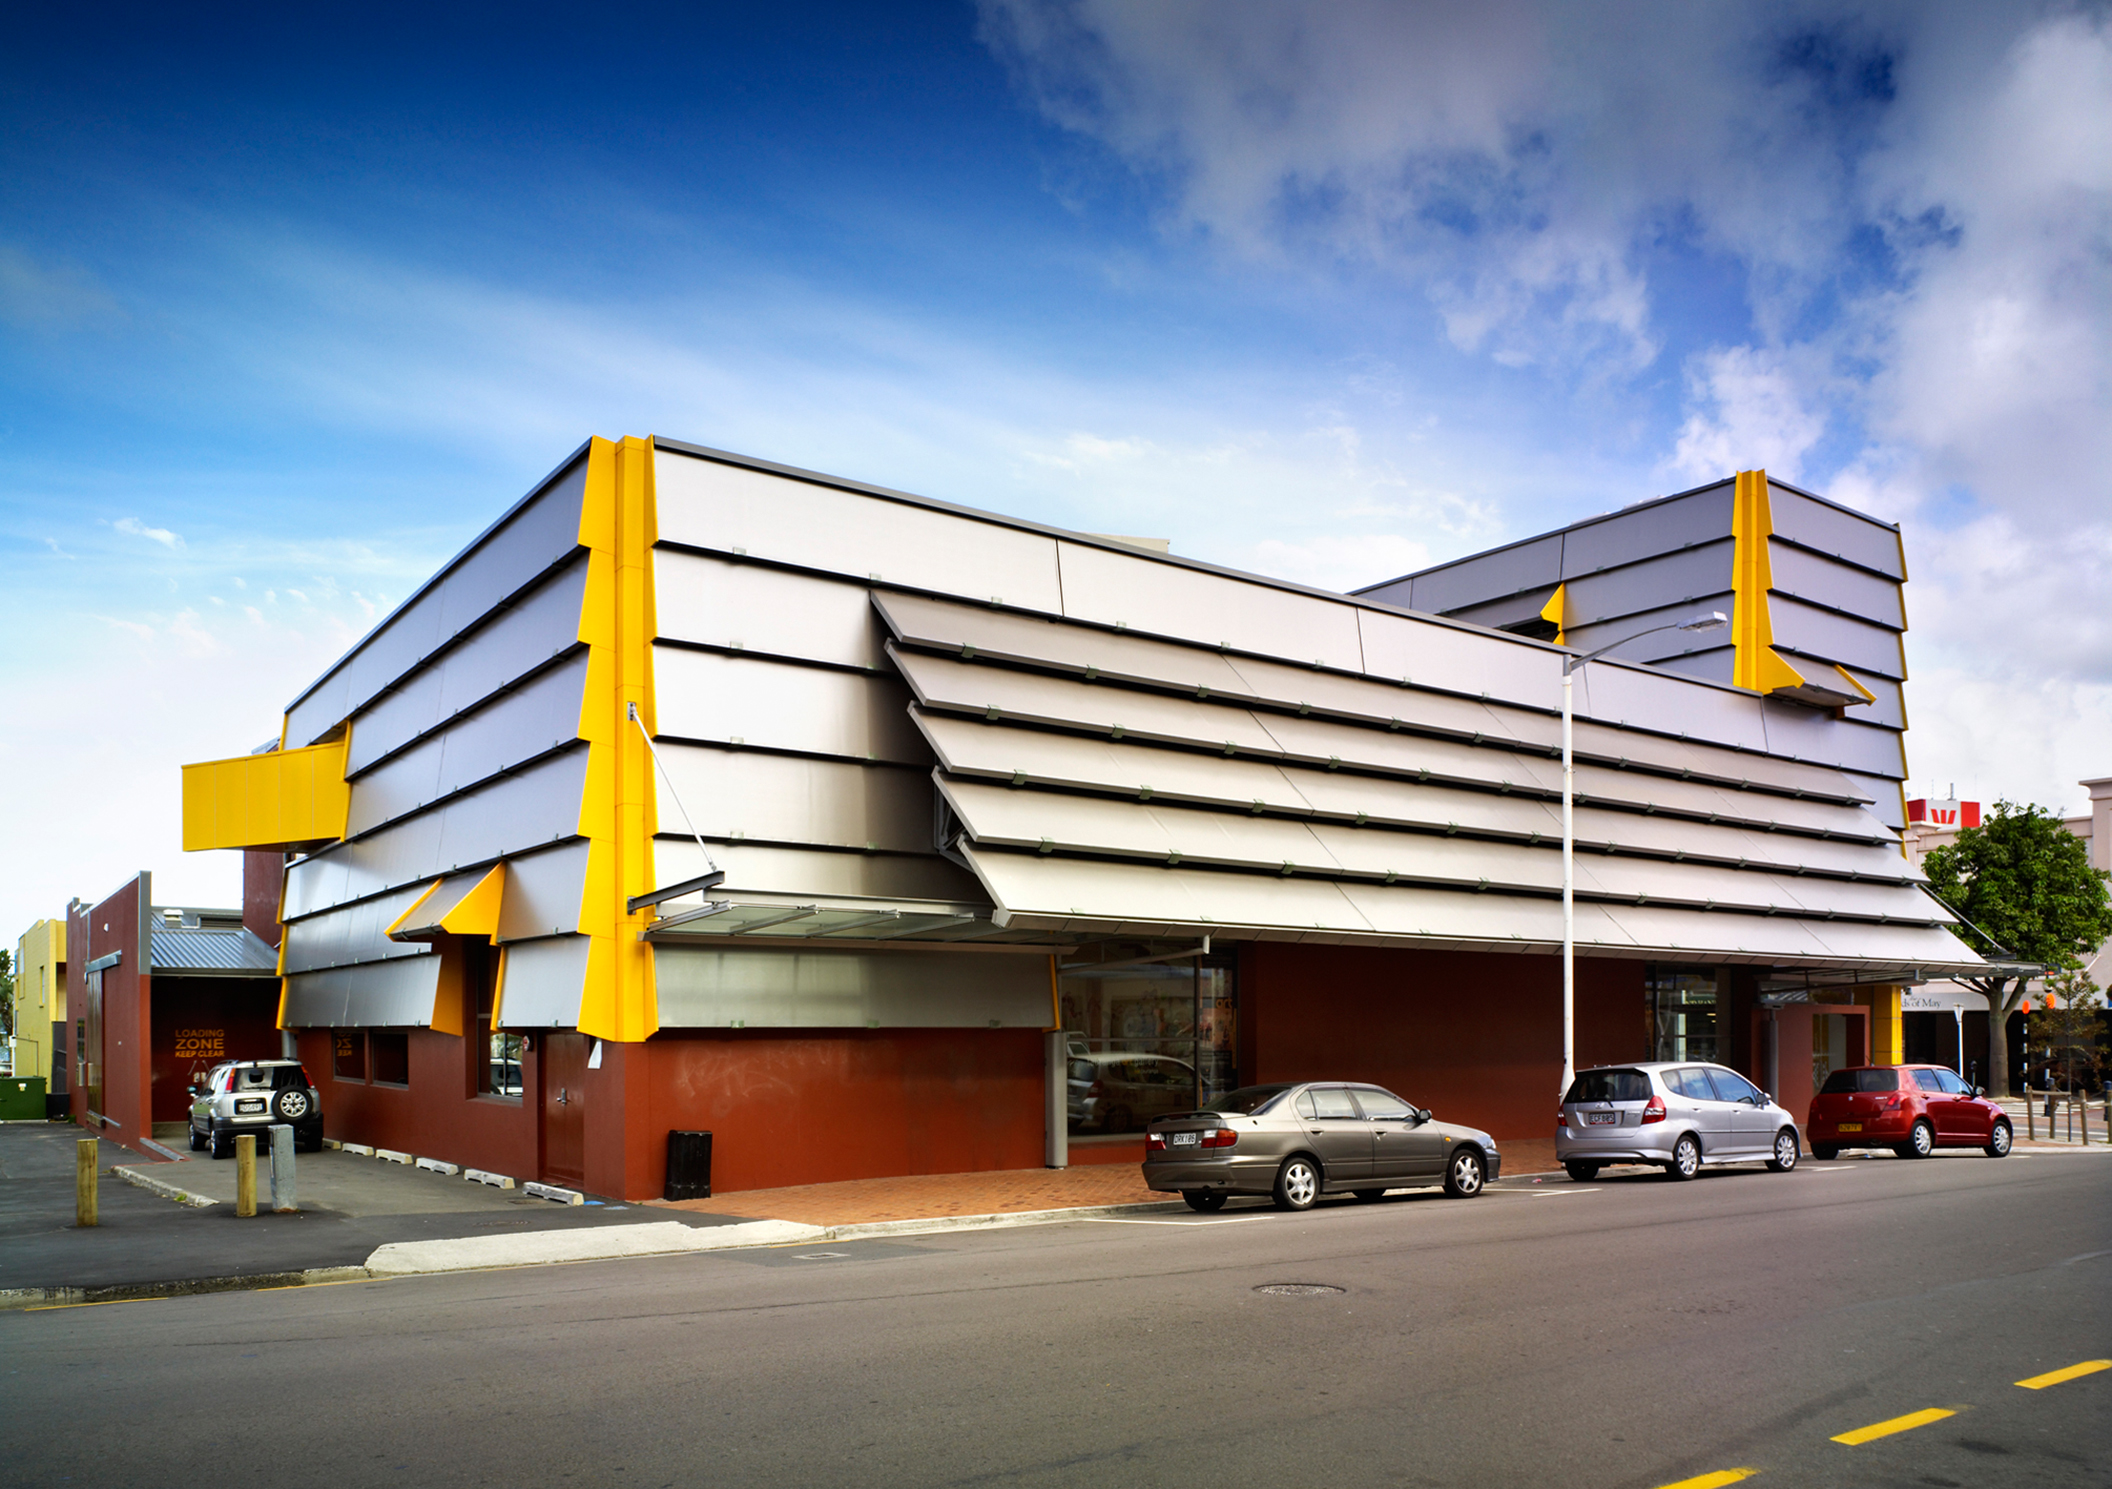 Tauranga Art Gallery Mitchell & Stout Architects 2.jpg